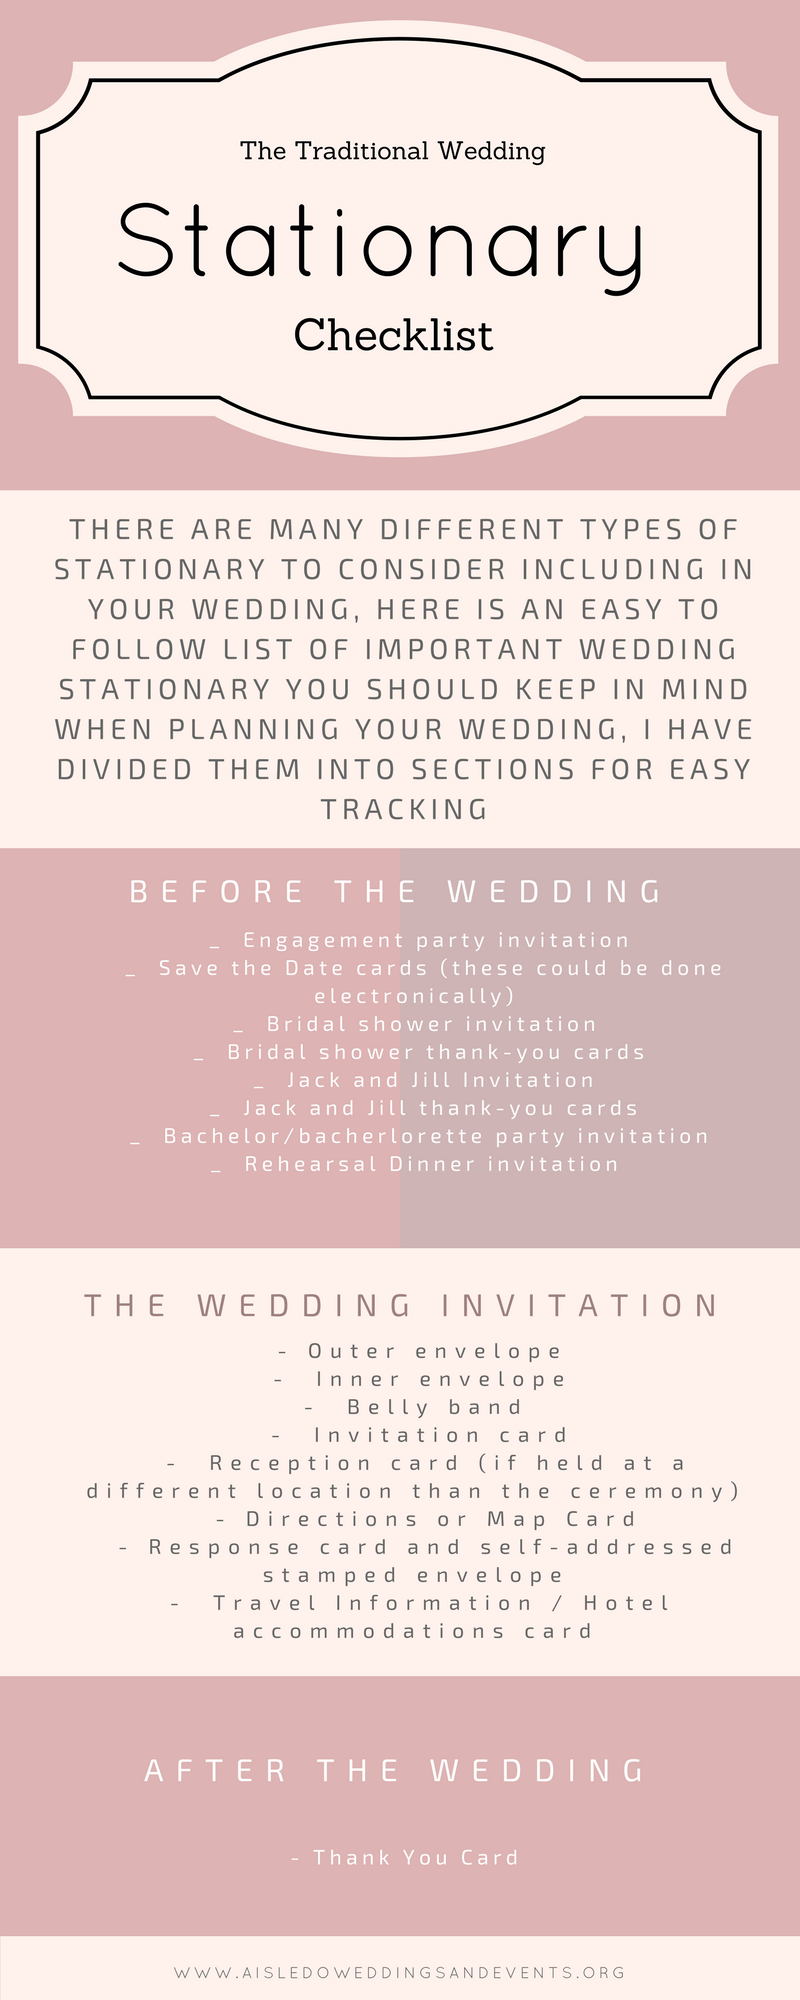 Traditional Wedding Stationary Checklist Png 800 2000